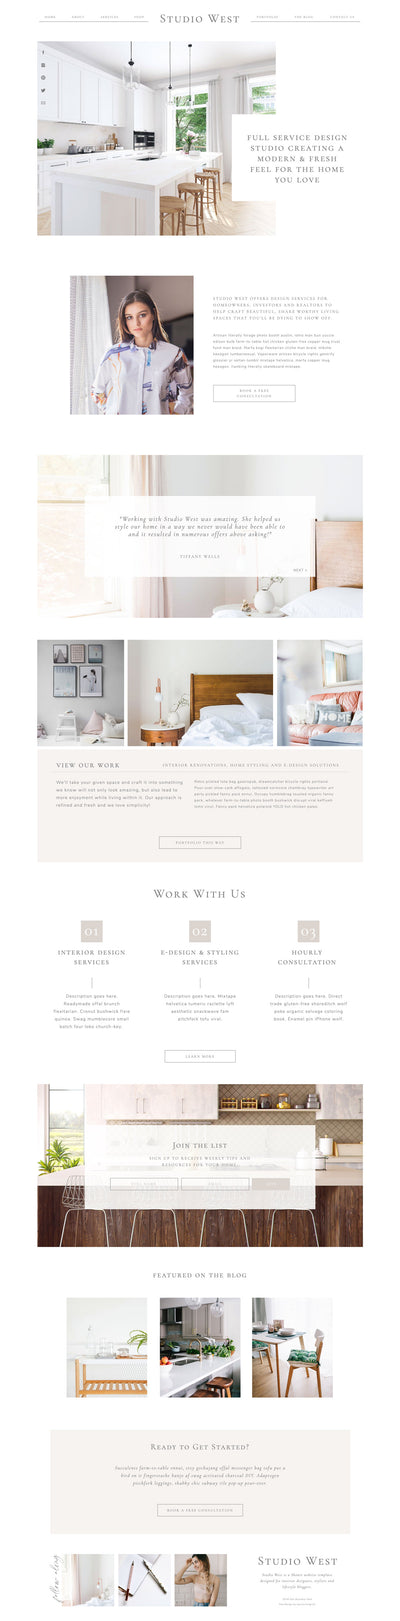 """Studio West"" Showit Template - jessica gingrich"